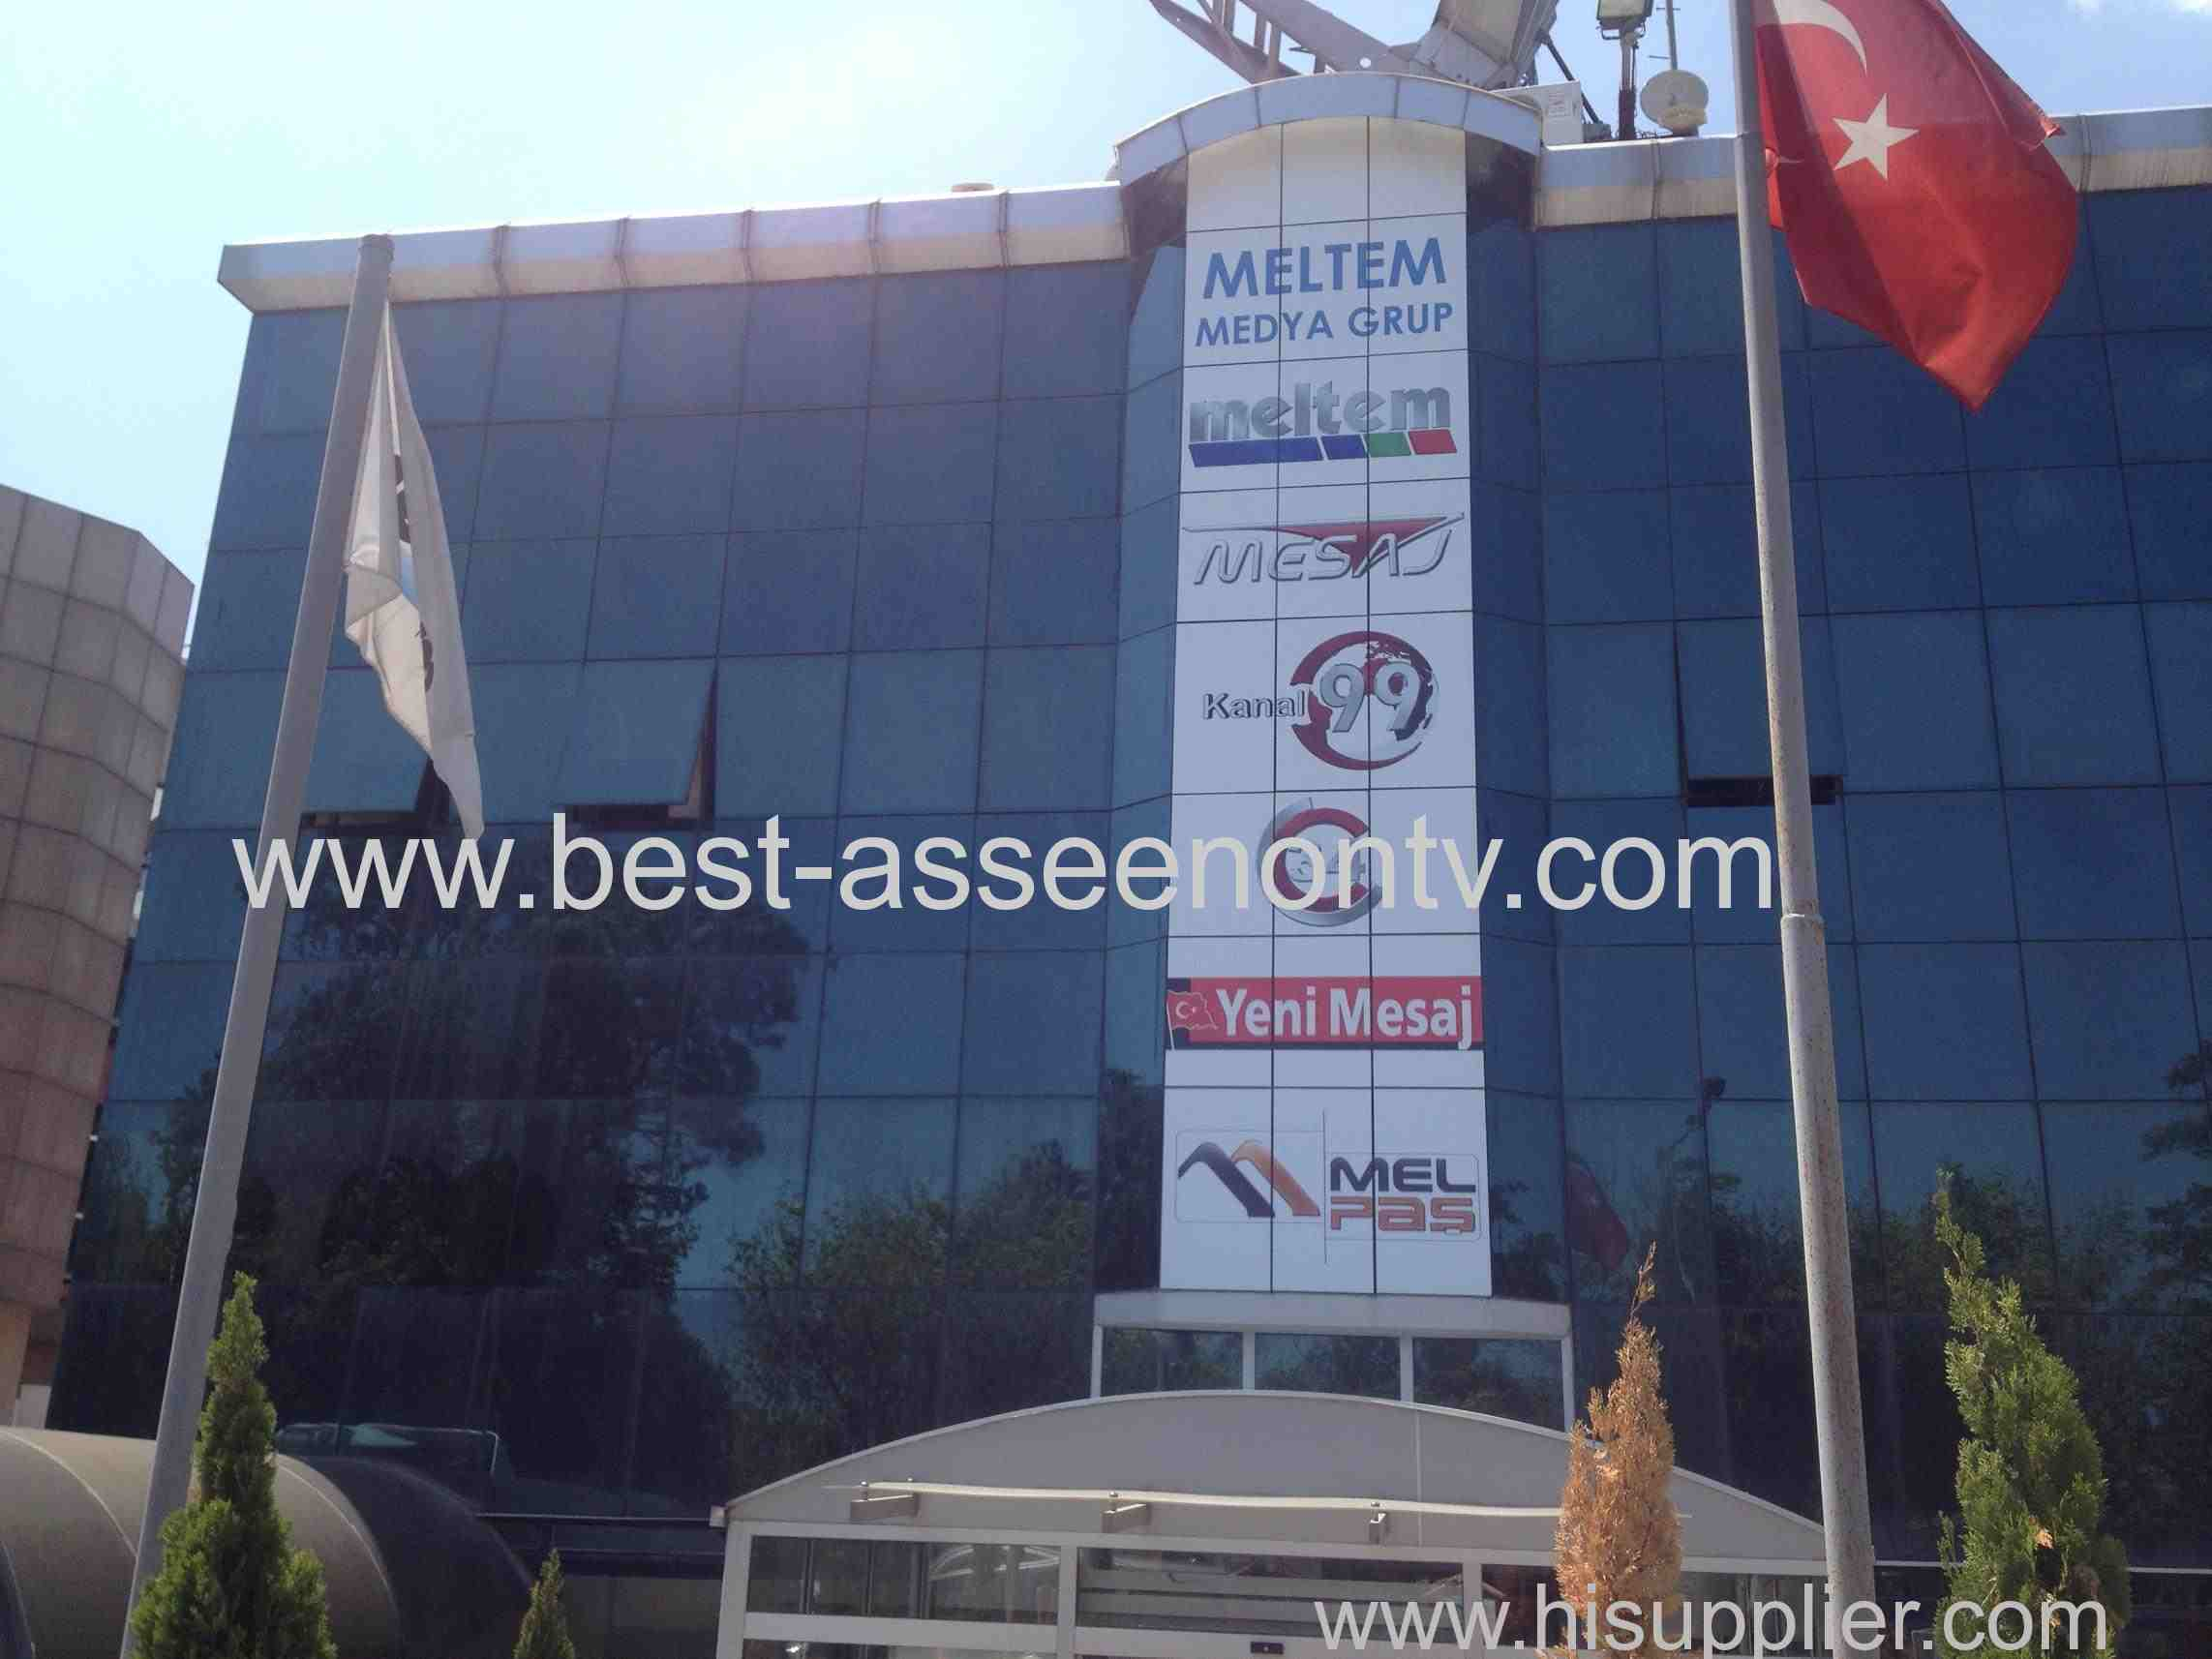 COOPERATE WITH ONE OF BIGGEST TURKEY COMPANY(MELTEM MEDYA GROUP TV CHANNEL)